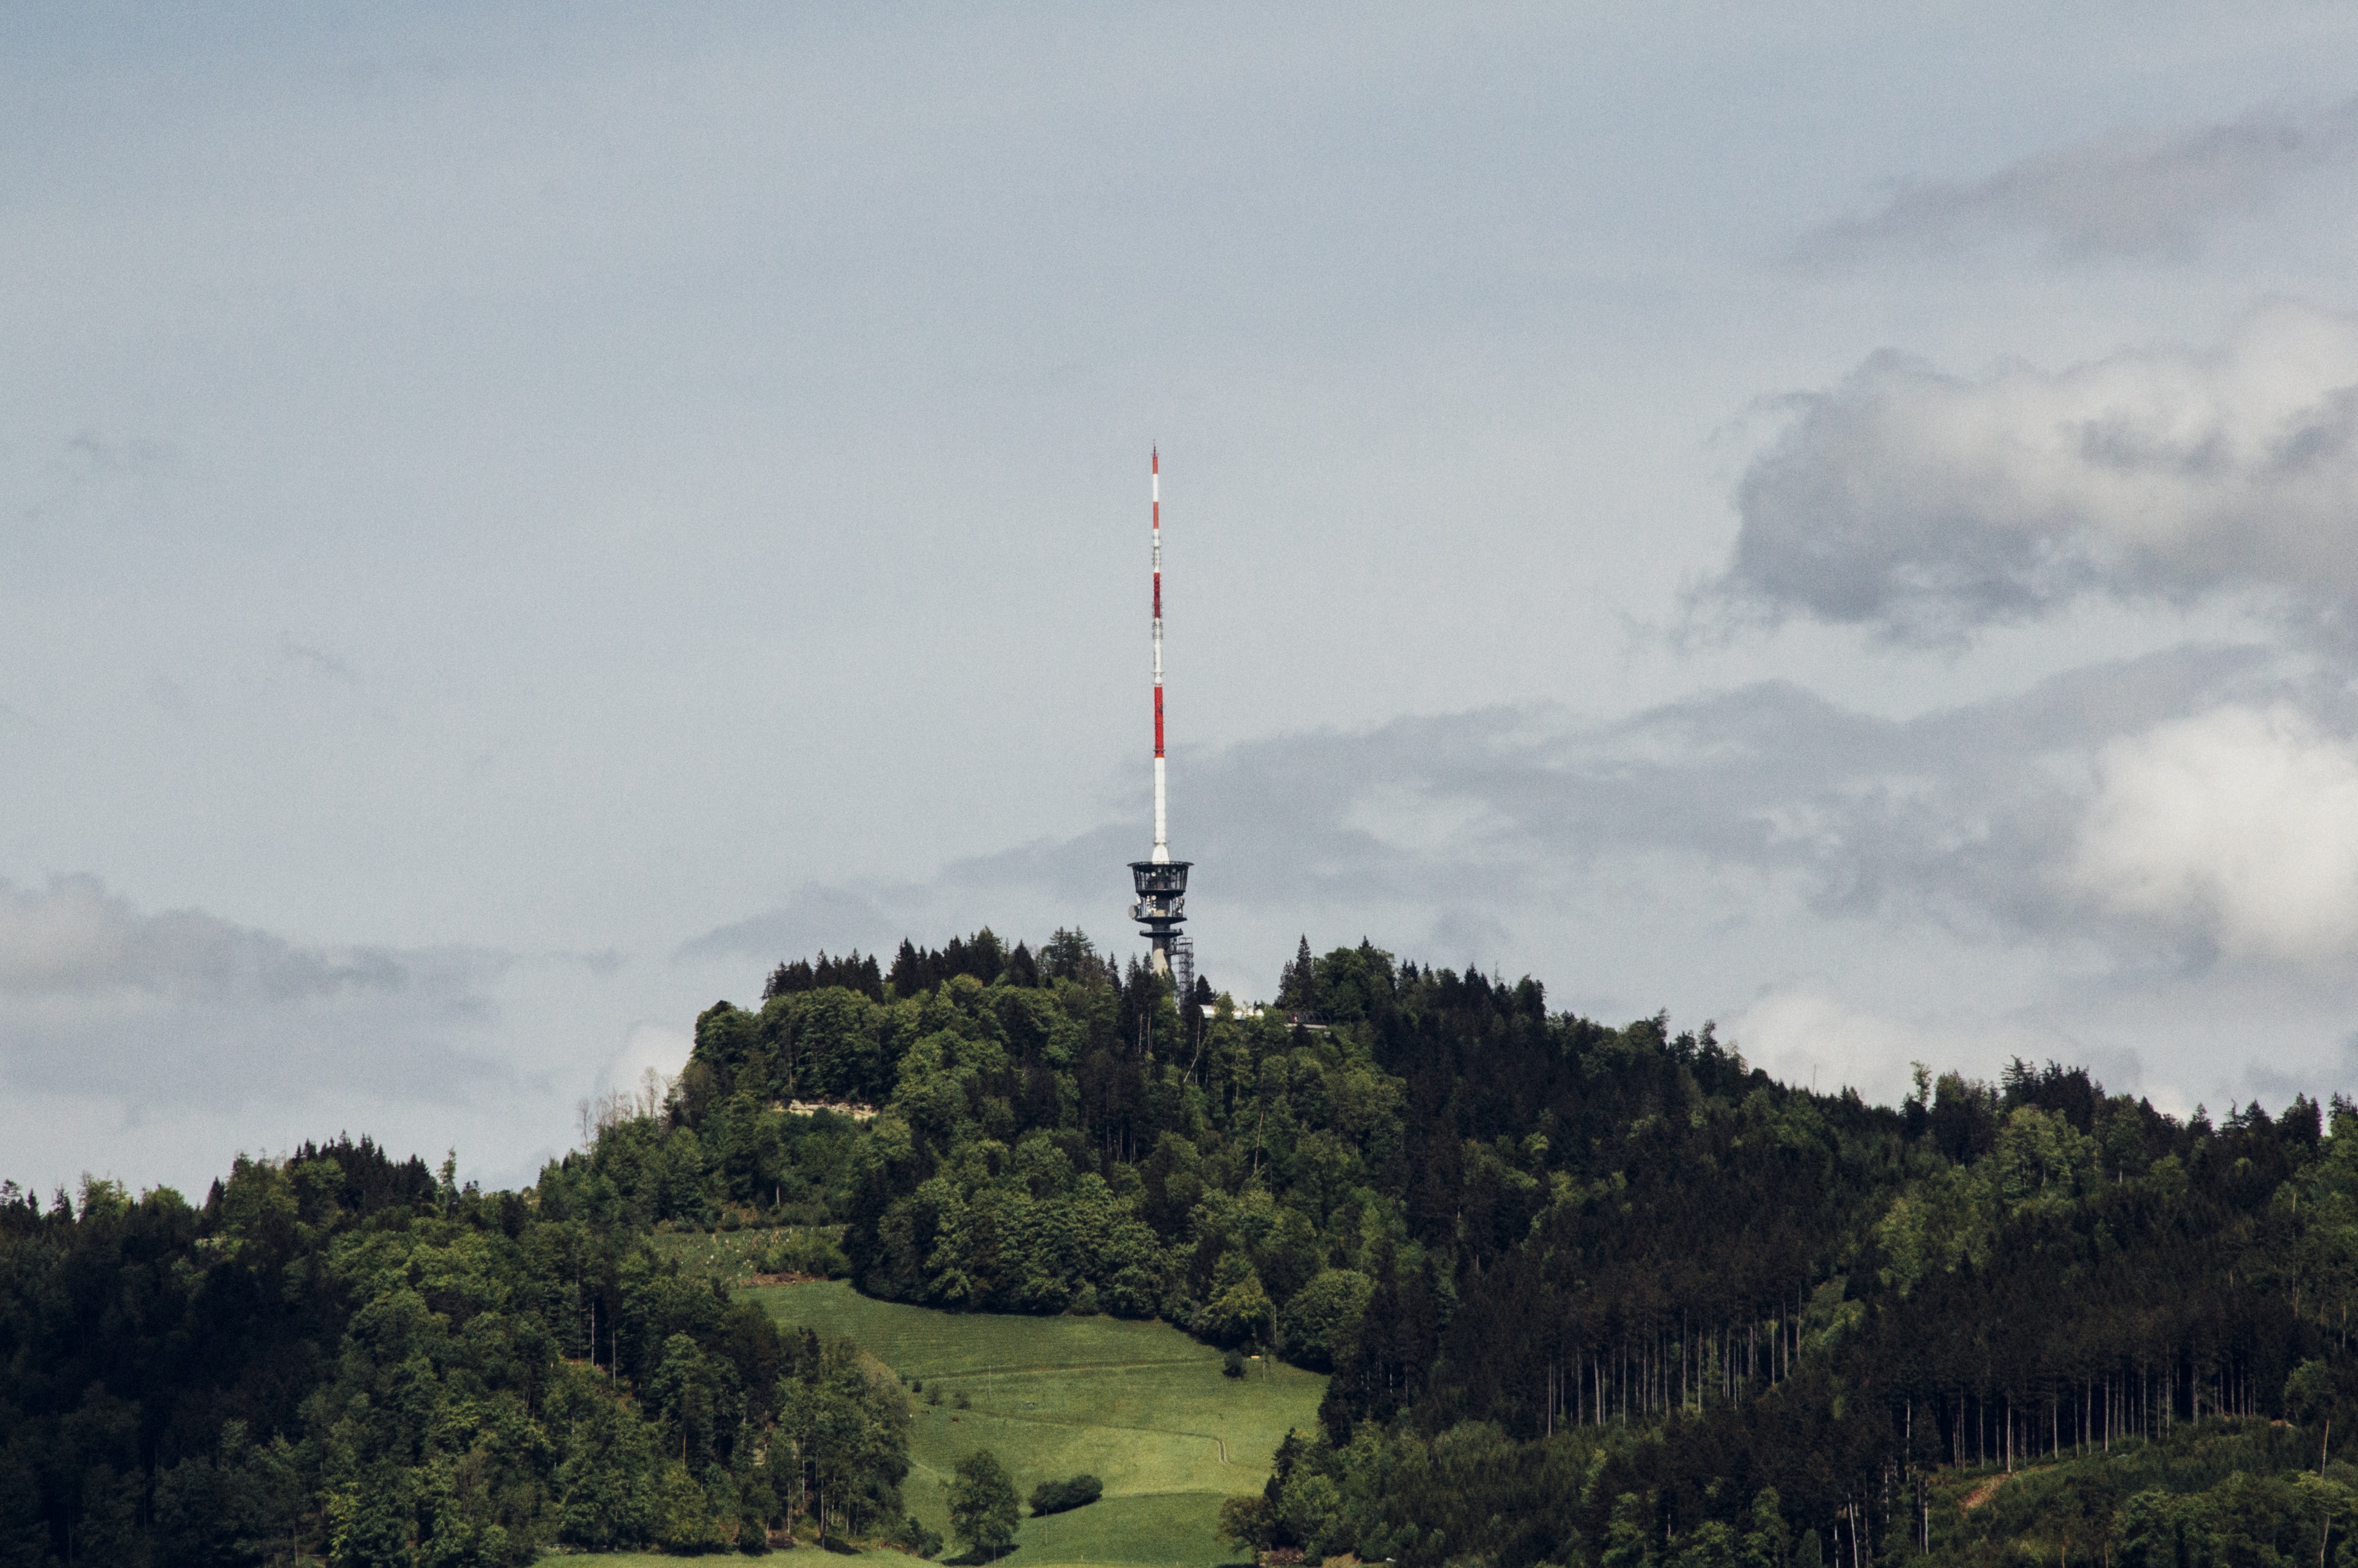 A transmission tower with a long antenna on a hill in Bantiger